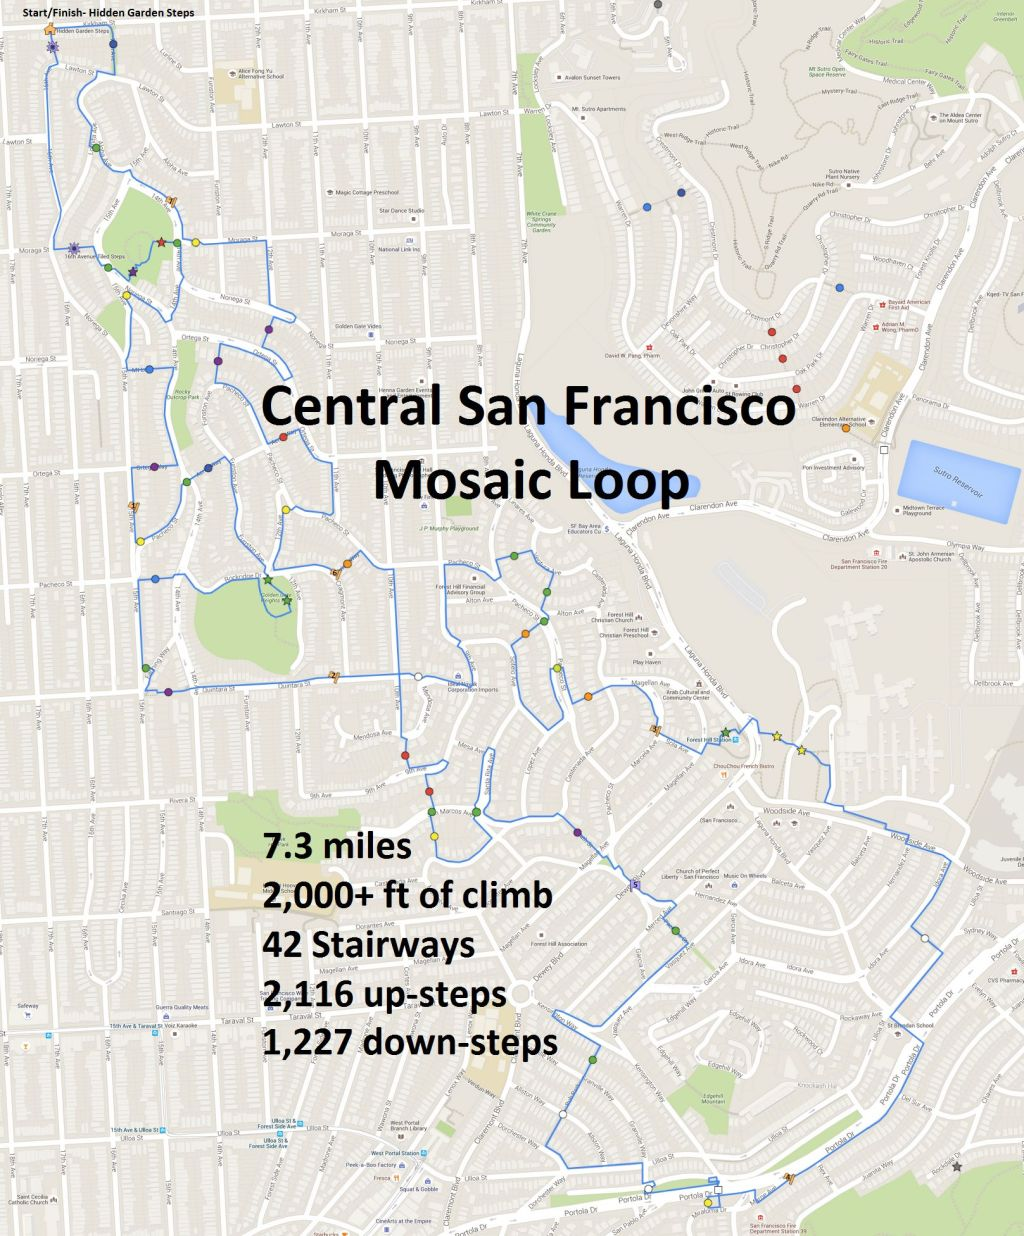 Mosaic Loop Google Map